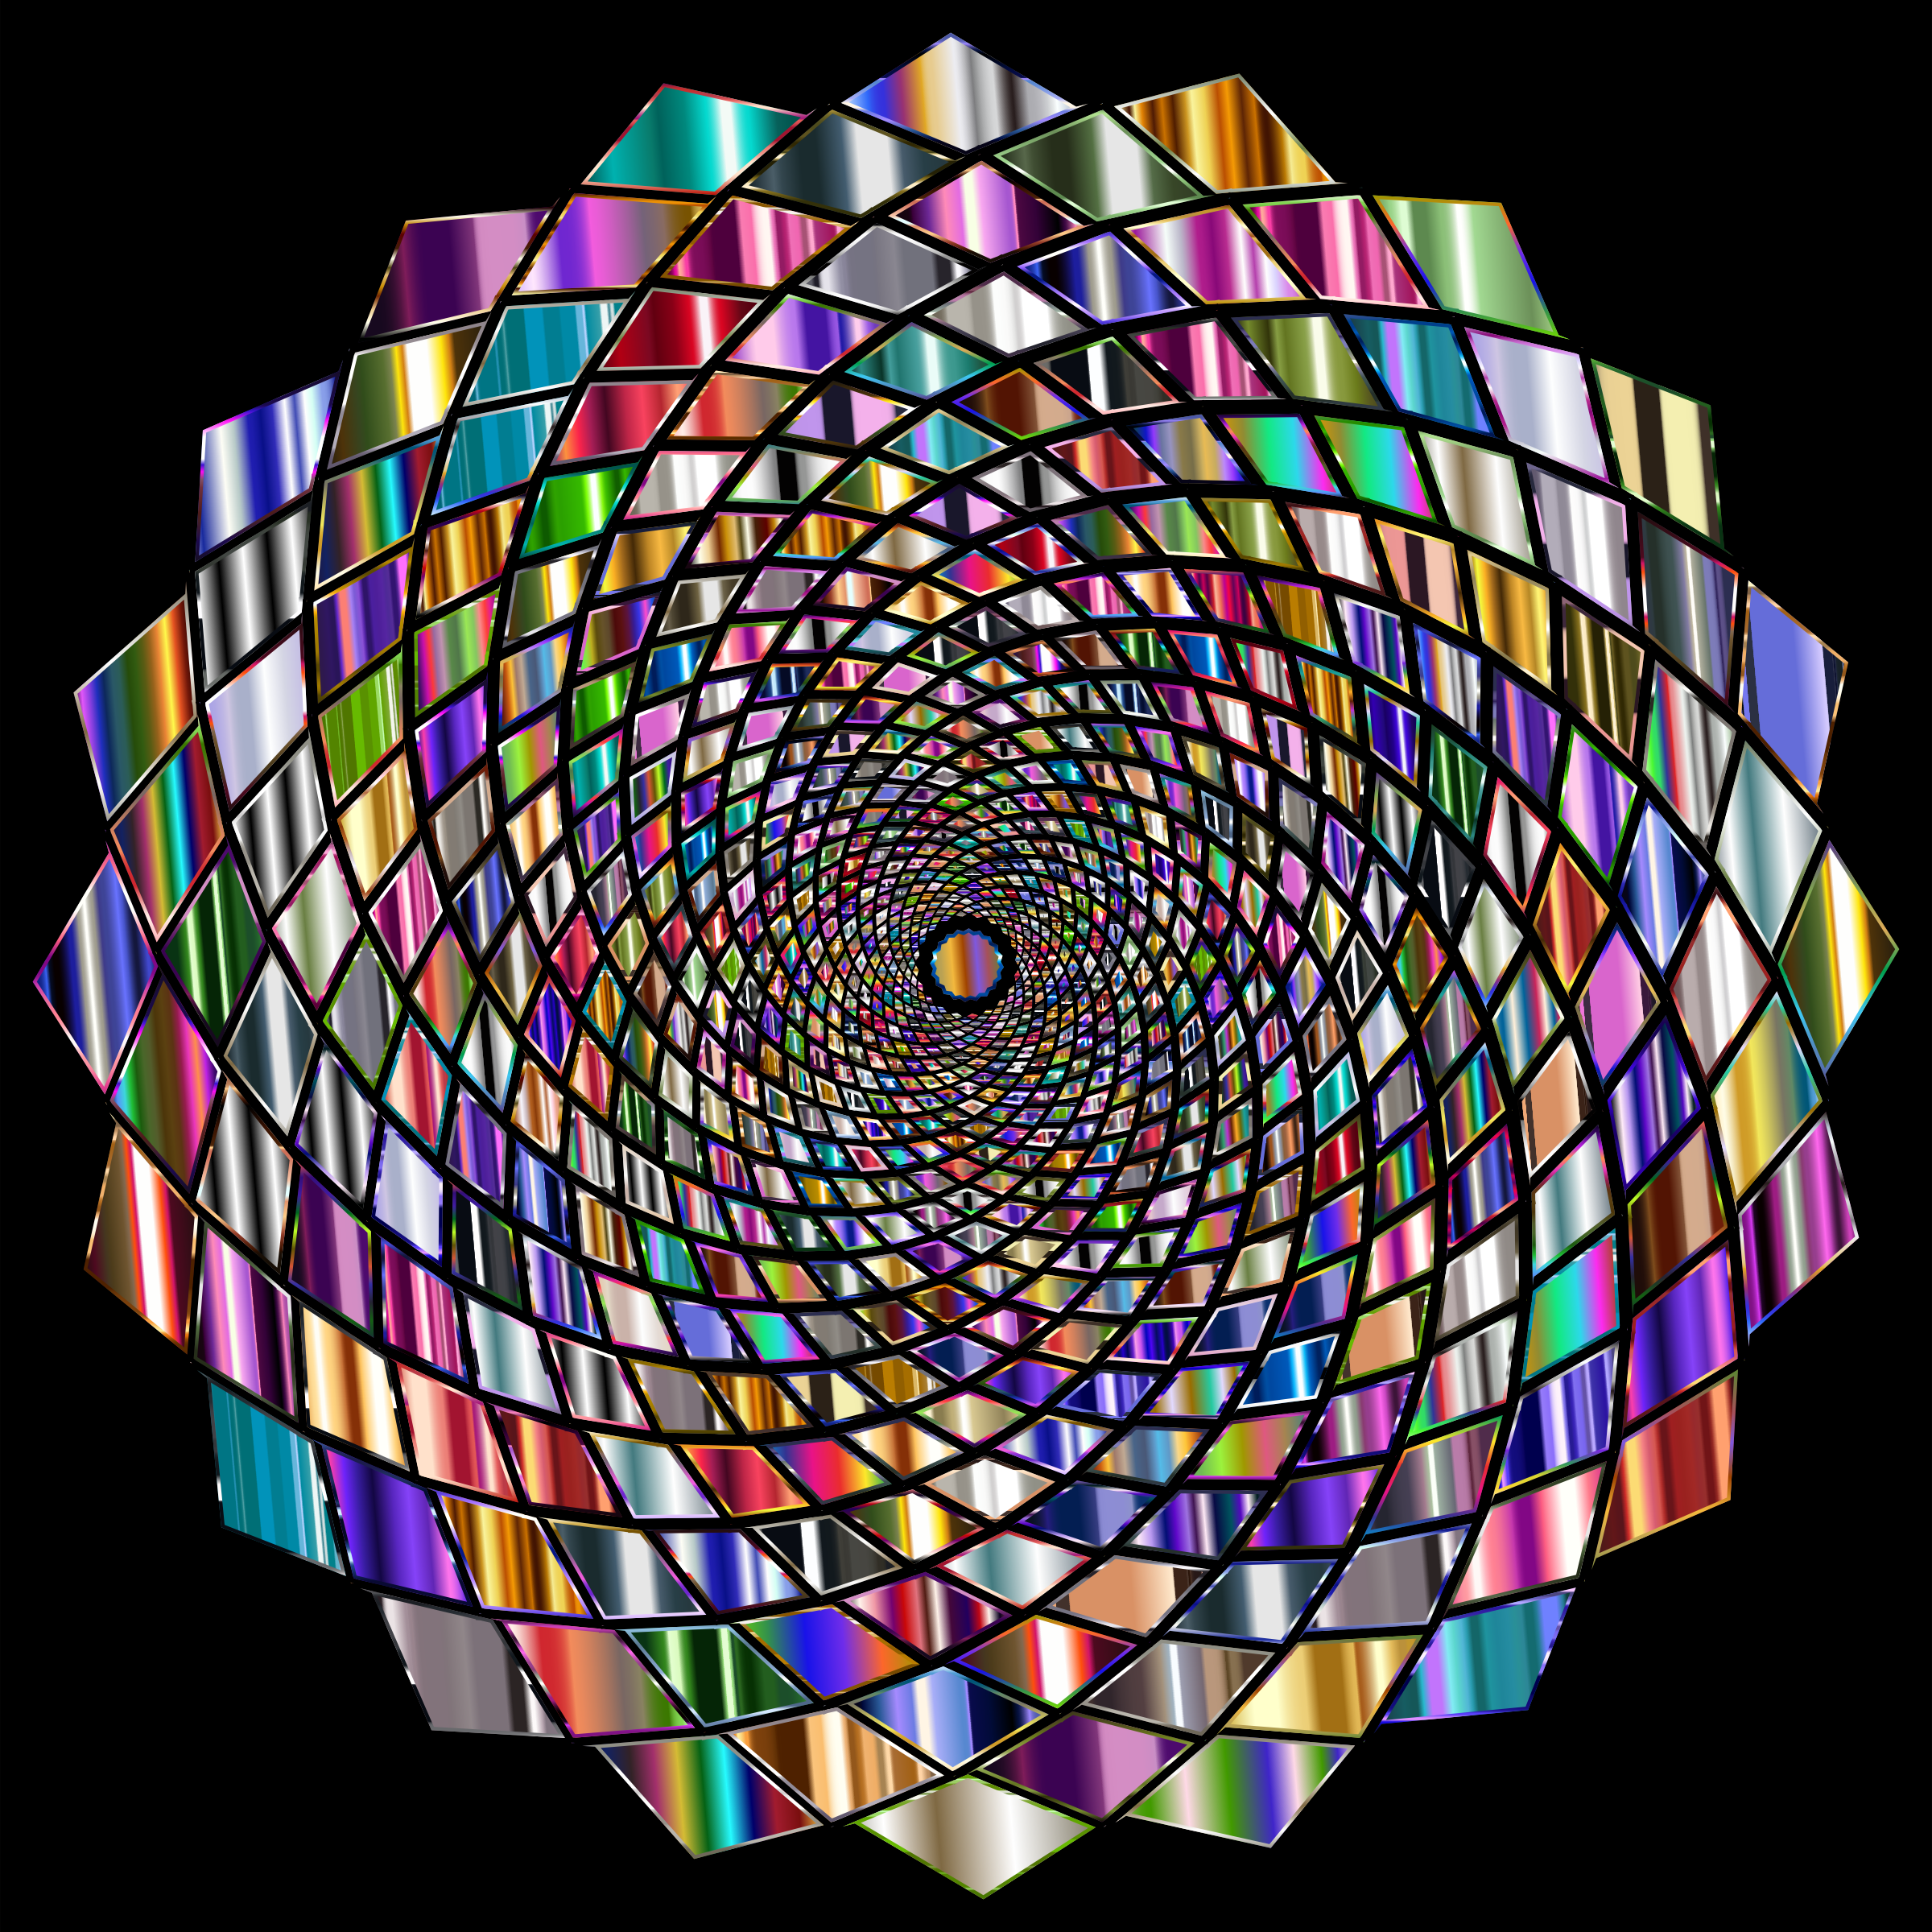 Chromatic Vortex 4 by GDJ